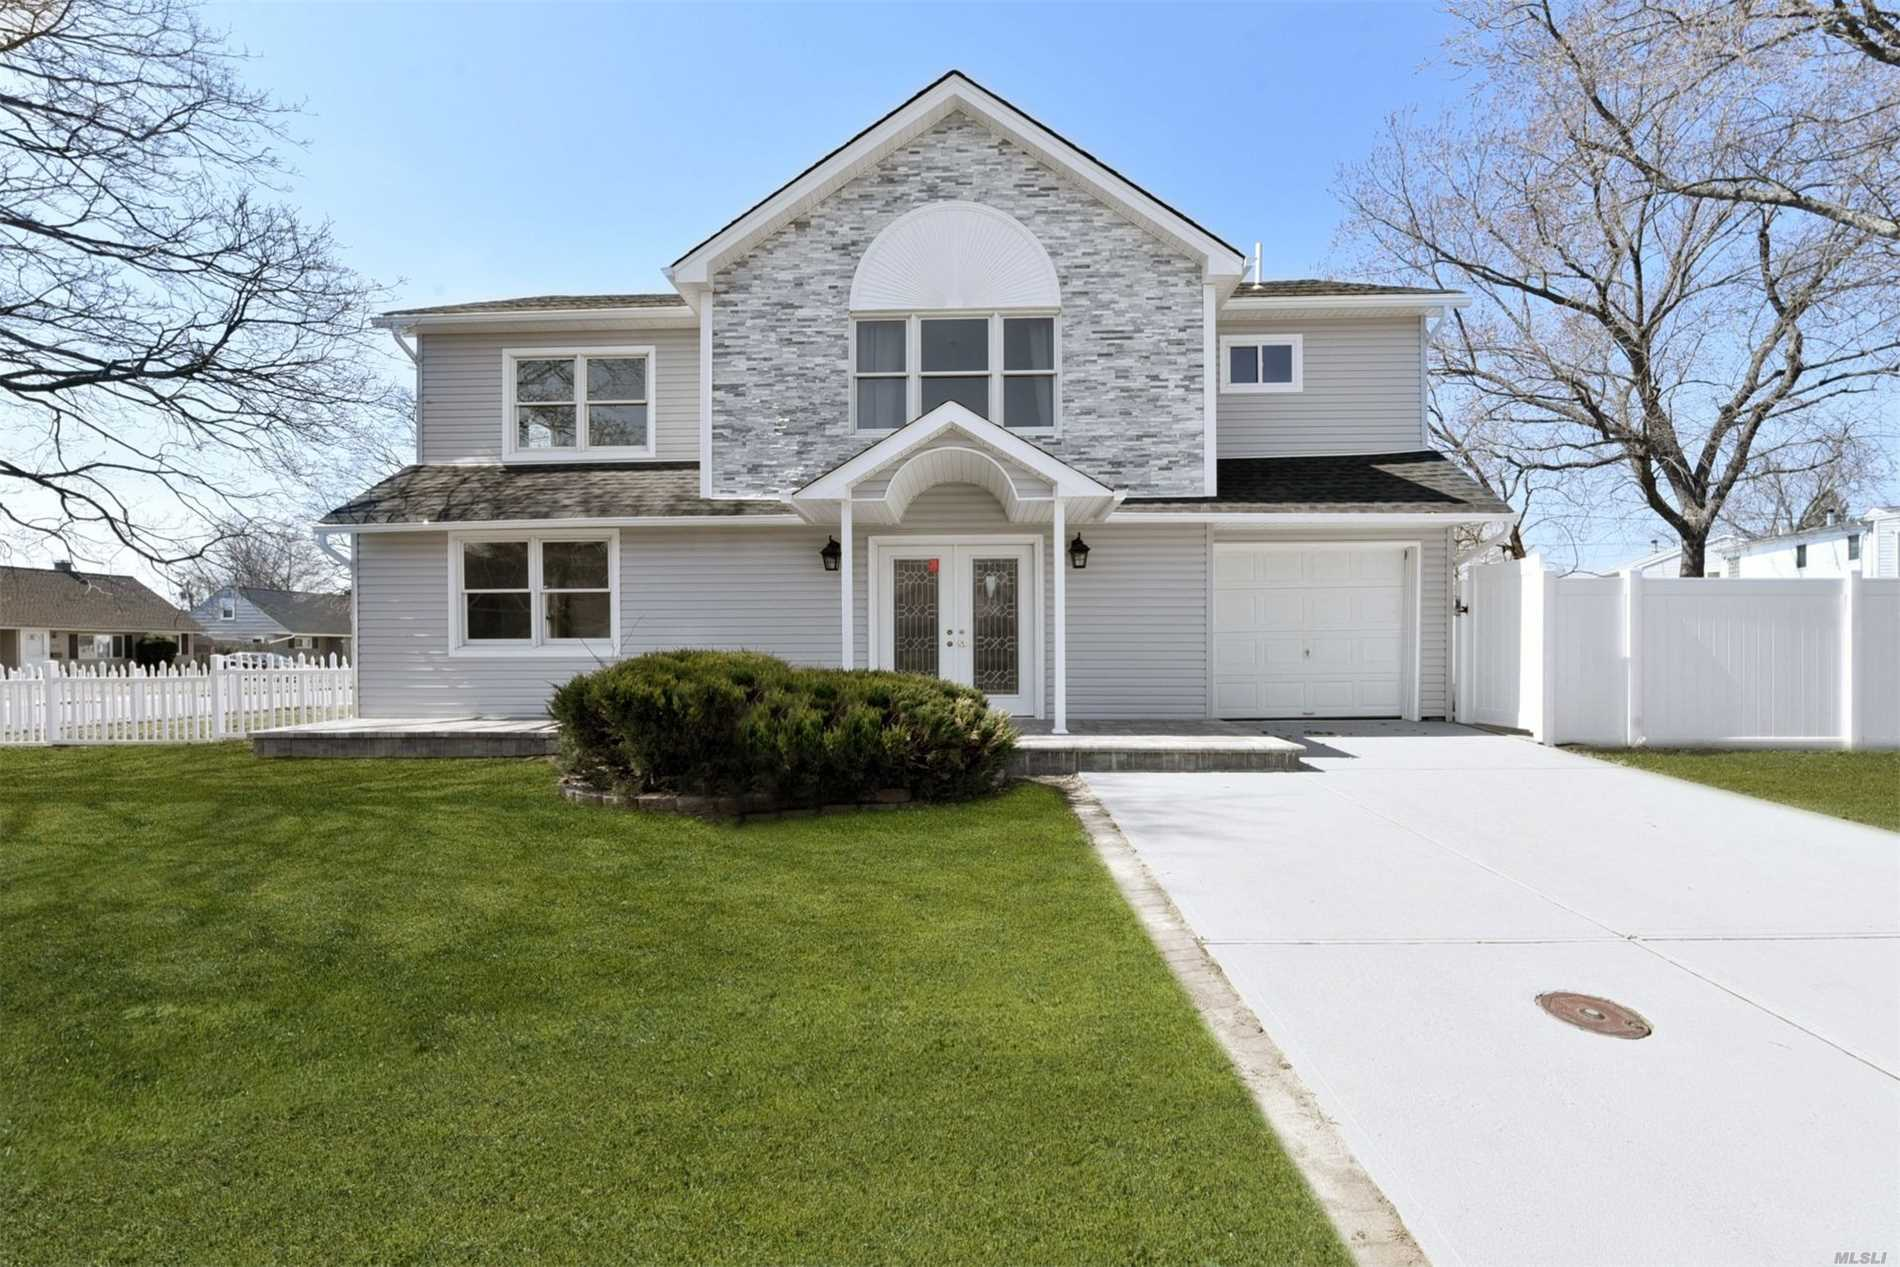 Magnificent Colonial On A Well Landscaped Property In Bethpage. .This 5 Bedroom, 3 Bathroom House Has Been Completely Remodeled.Updated Kitchen With Stainless Steel Appliances, Hardwood Floors, Custom Bathroom's, Walk In Closets, En-suite Master, Fenced Yard, Low Taxes And A Lot More. Overall Generous Amount Of Living Space And Stylish Finishes. This One Is A Must See.